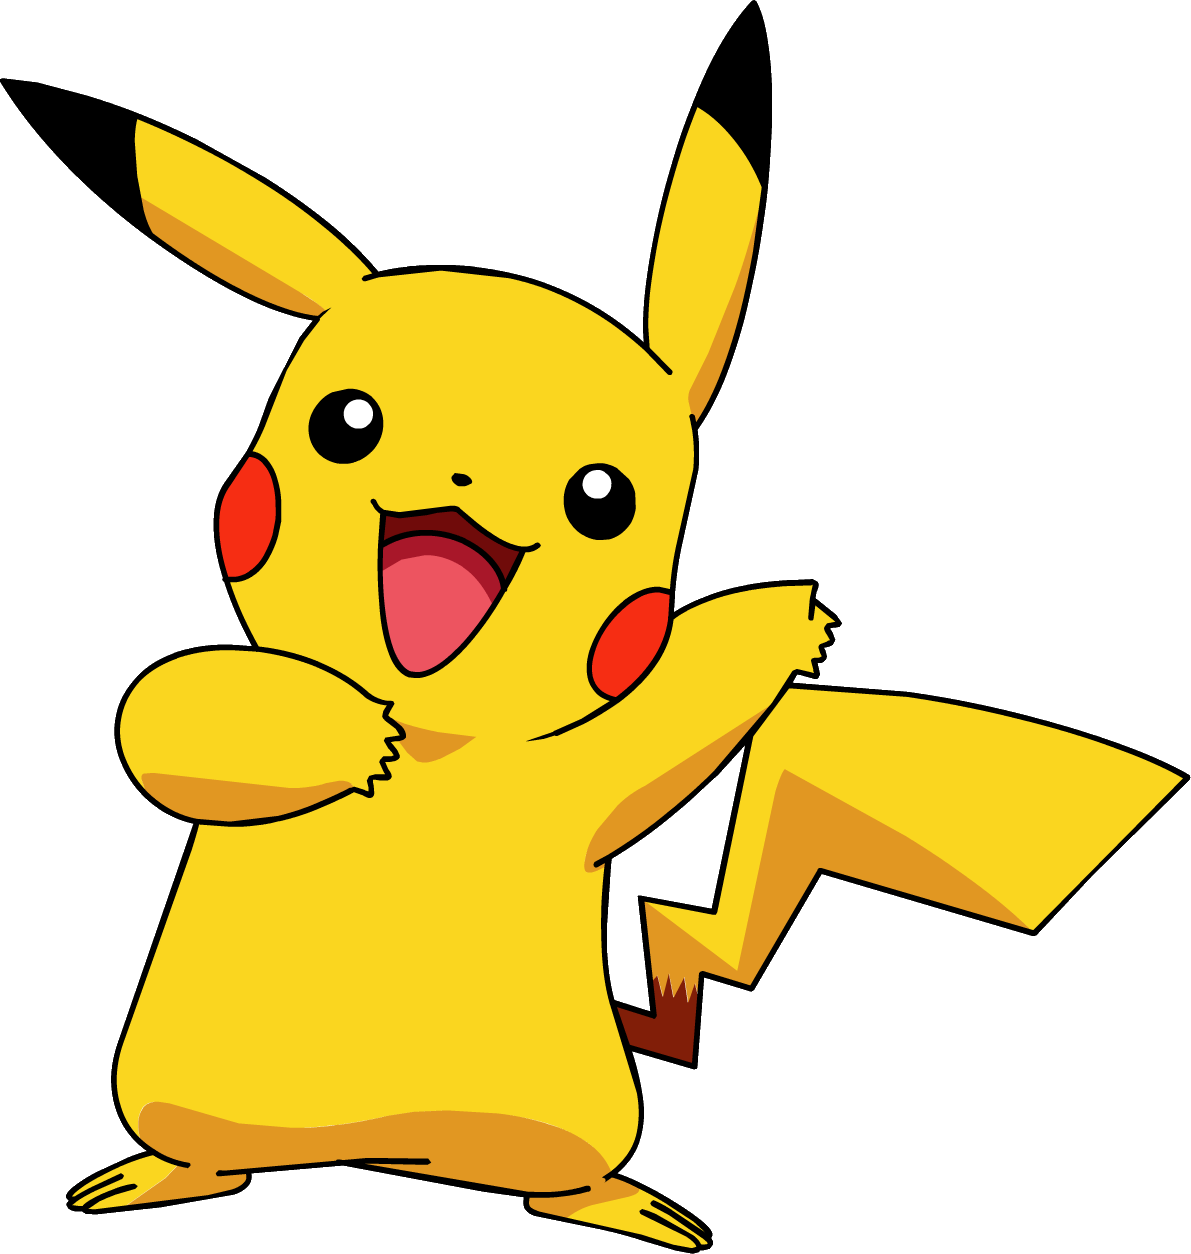 Image - 025Pikachu OS anime 4.png | Pokémon Wiki | FANDOM powered by Wikia - Pokemon HD PNG